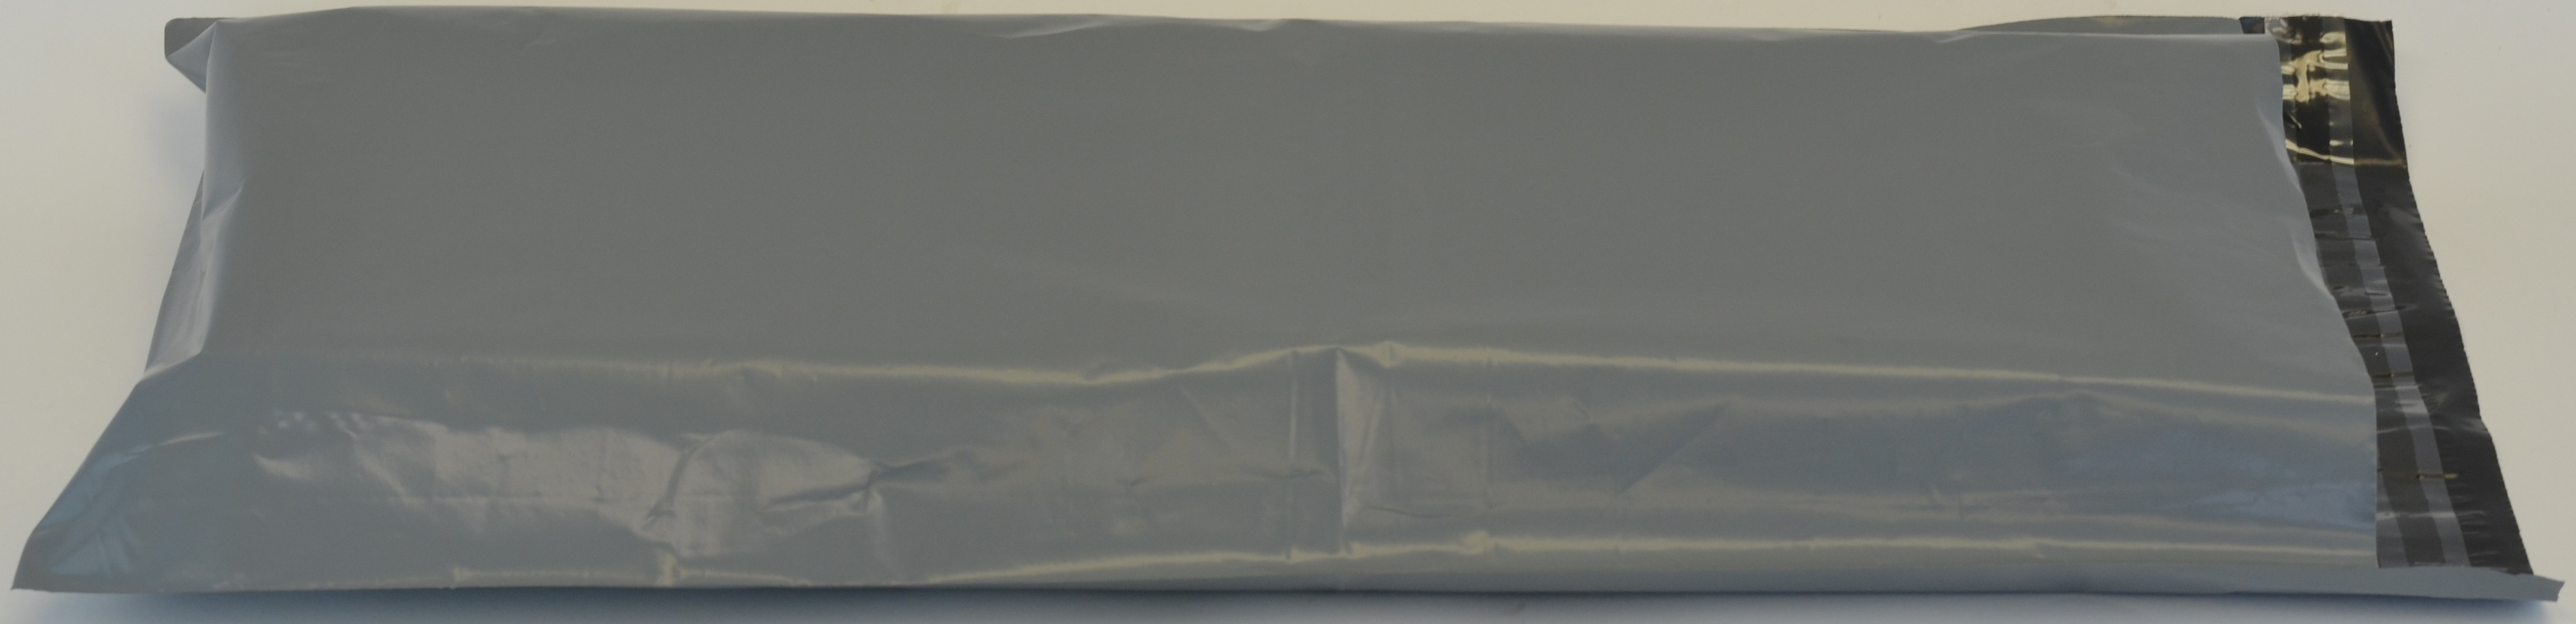 "100 - 10x20"" Poly Mailers Envelopes Self Sealing Bags - 2.4 Mil"